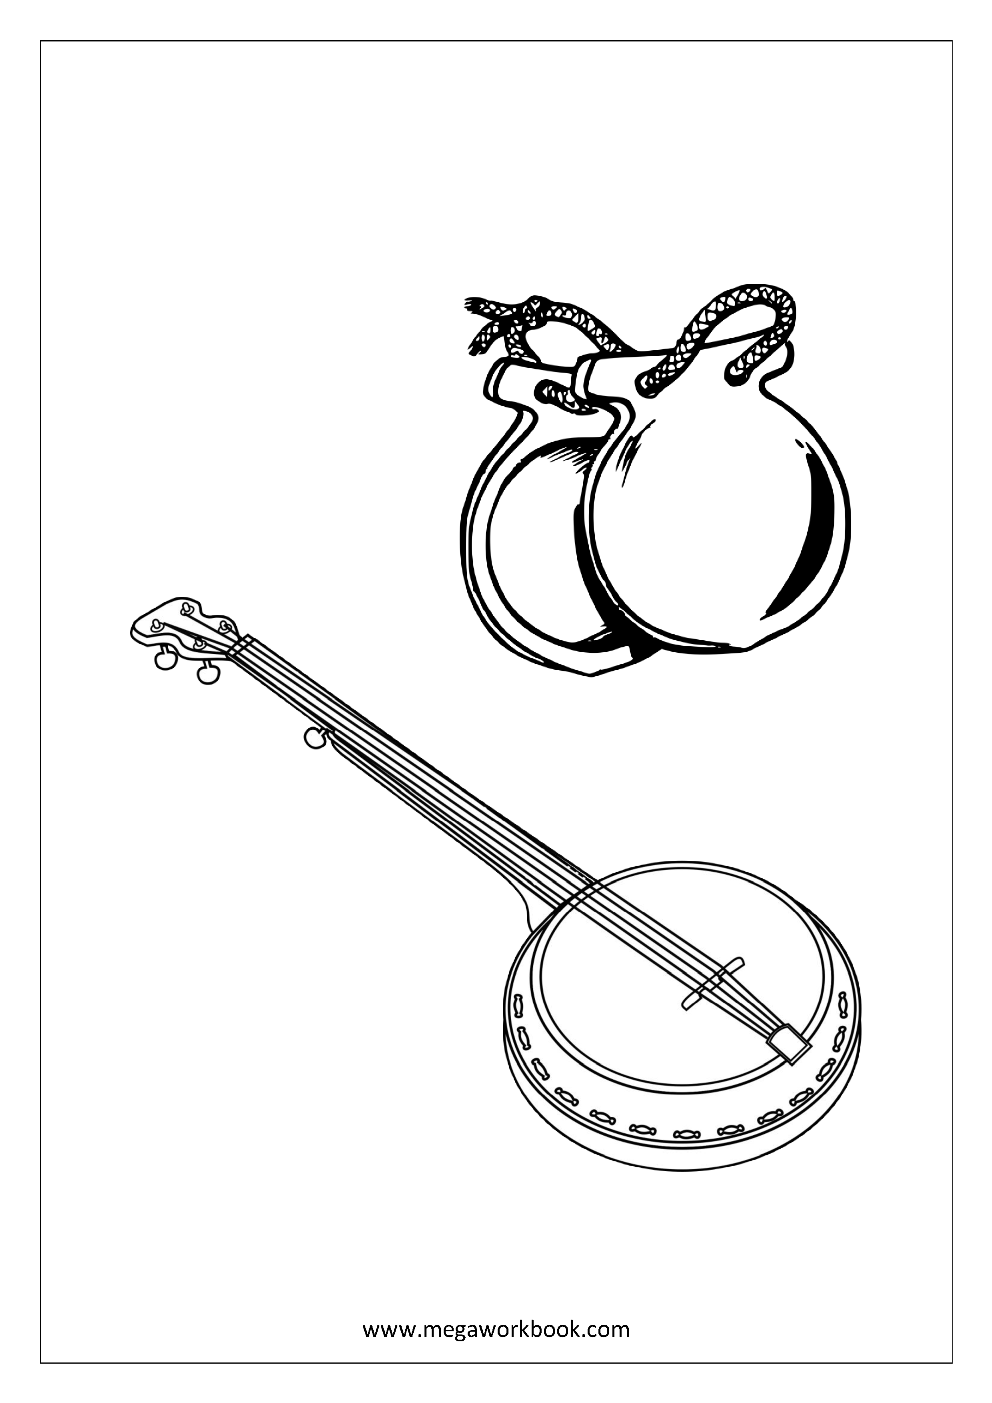 Free coloring pages instruments - Coloring Sheet Musical Instruments Banjo And Castanet